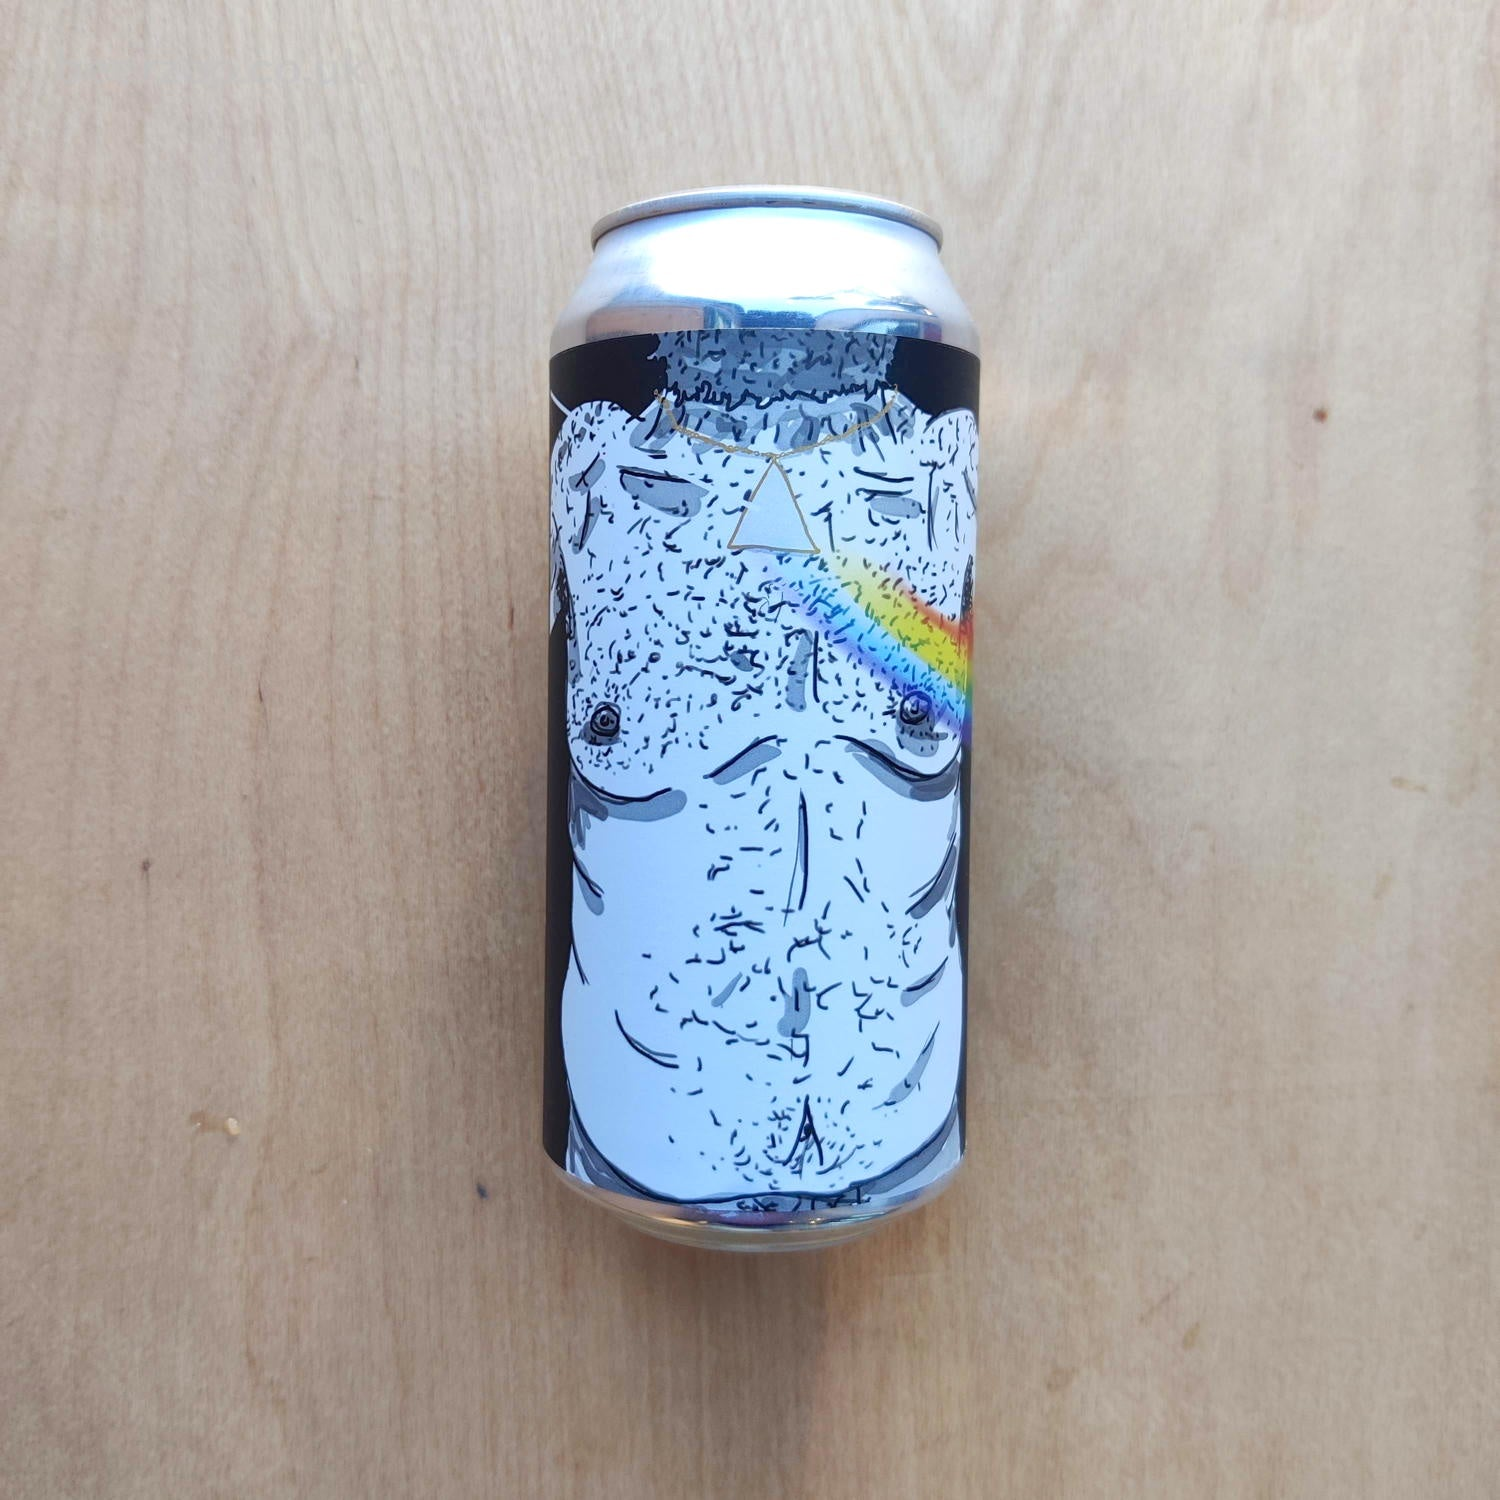 Northern Monk / Wylam - Dark Side Of The Moob 8.7% (440ml)